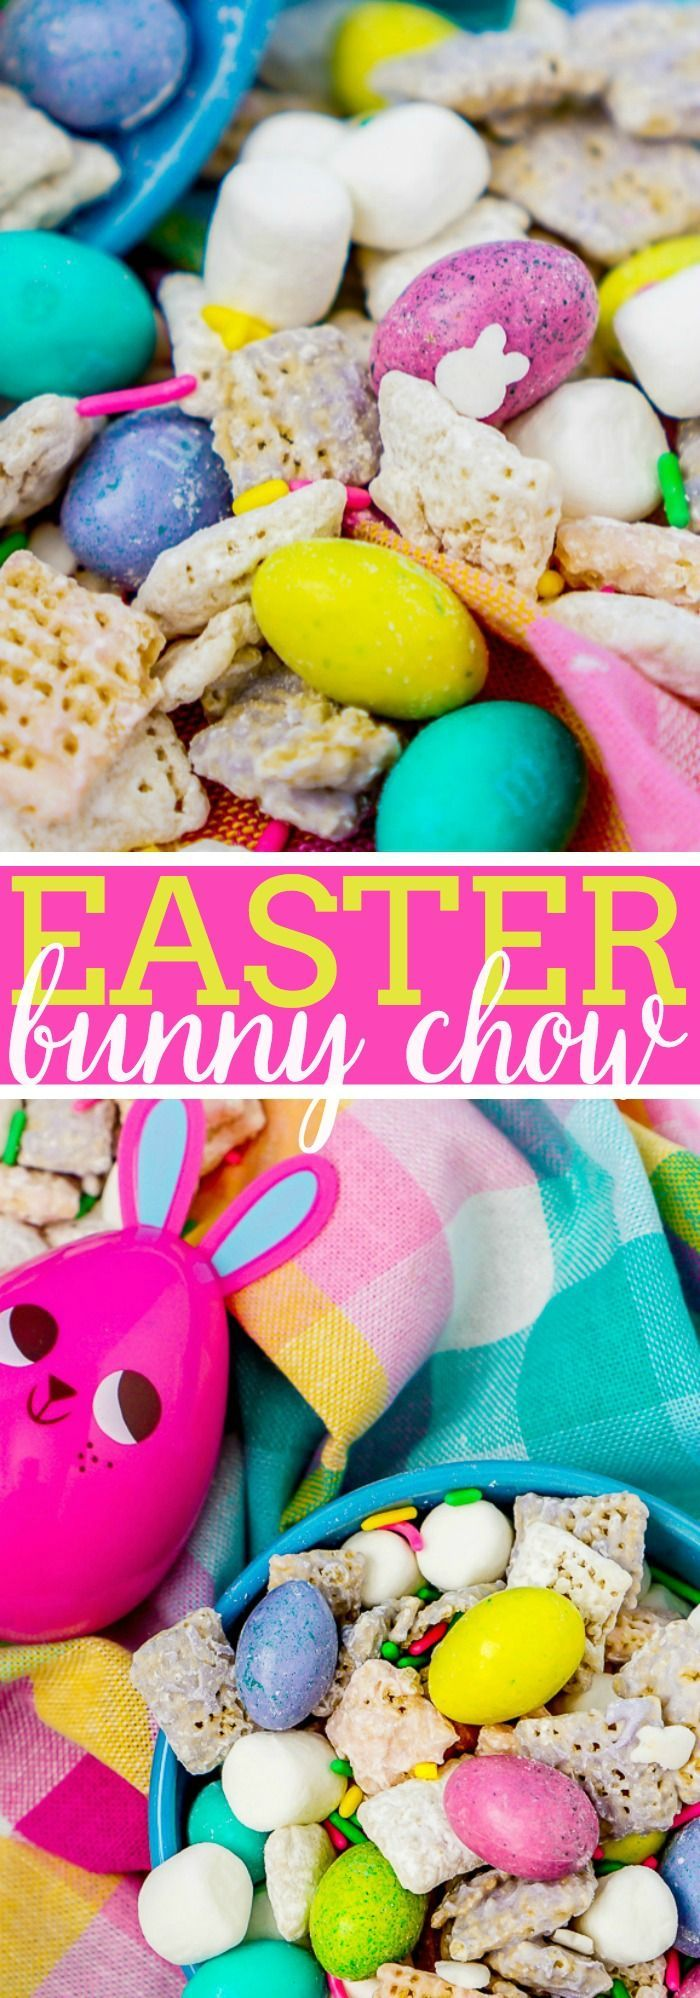 Easter Bunny Chow Recipe - An easy and tasty spring puppy chow recipe the whole family will love! These muddy buddies are just too cute to pass up for the Easter holiday and it's nut free! | The Love Nerds via @lovenerdmaggie